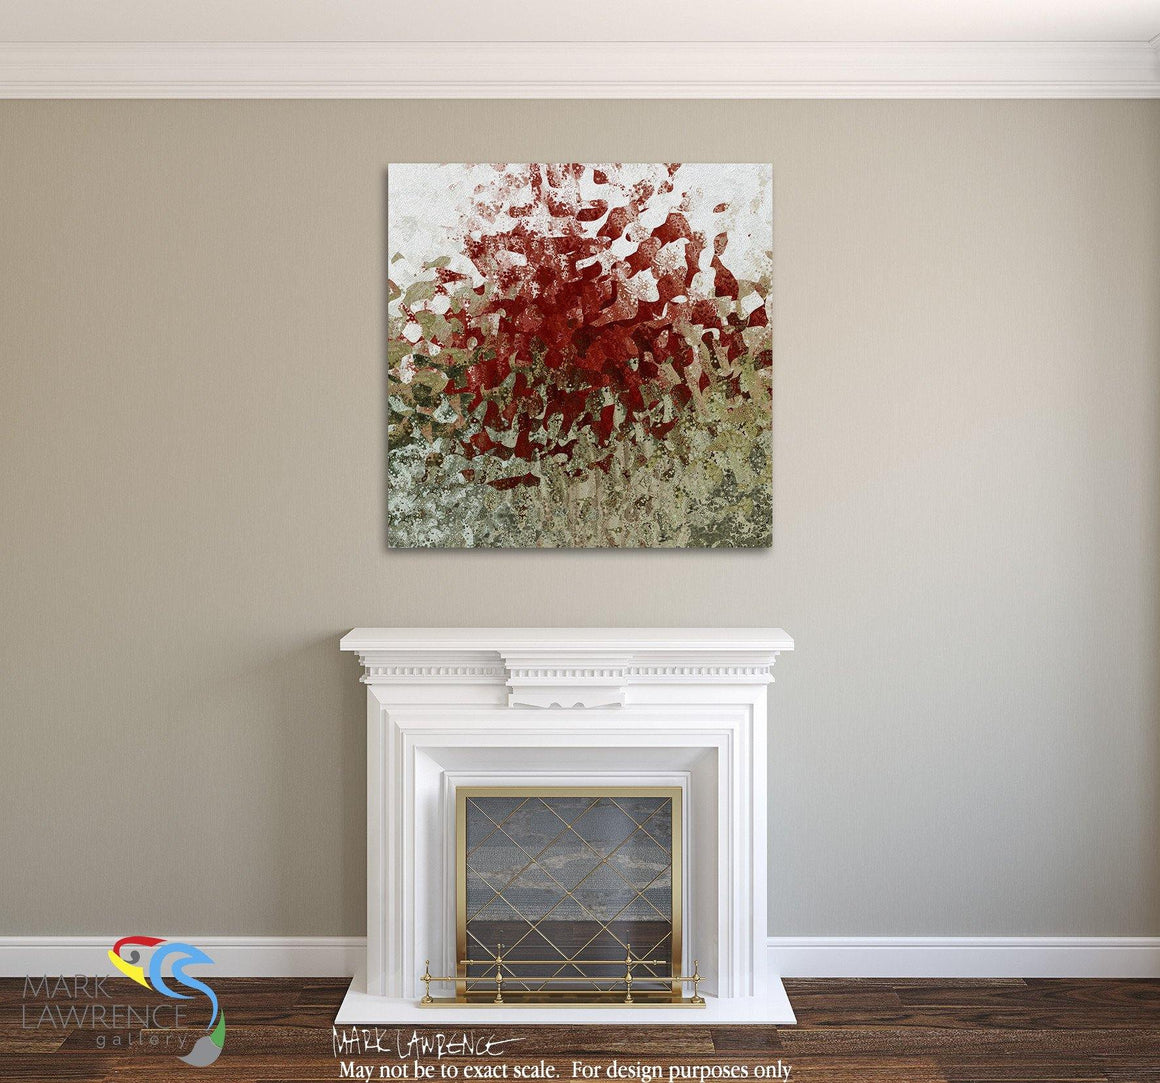 "Interior Design Focal Art Inspiration-Limited Edition Modern Christian Art Signed by Mark Lawrence. Inspiring, big 54""x54"" art on canvas. Ultra hand embellished with rich brush strokes by the artist"